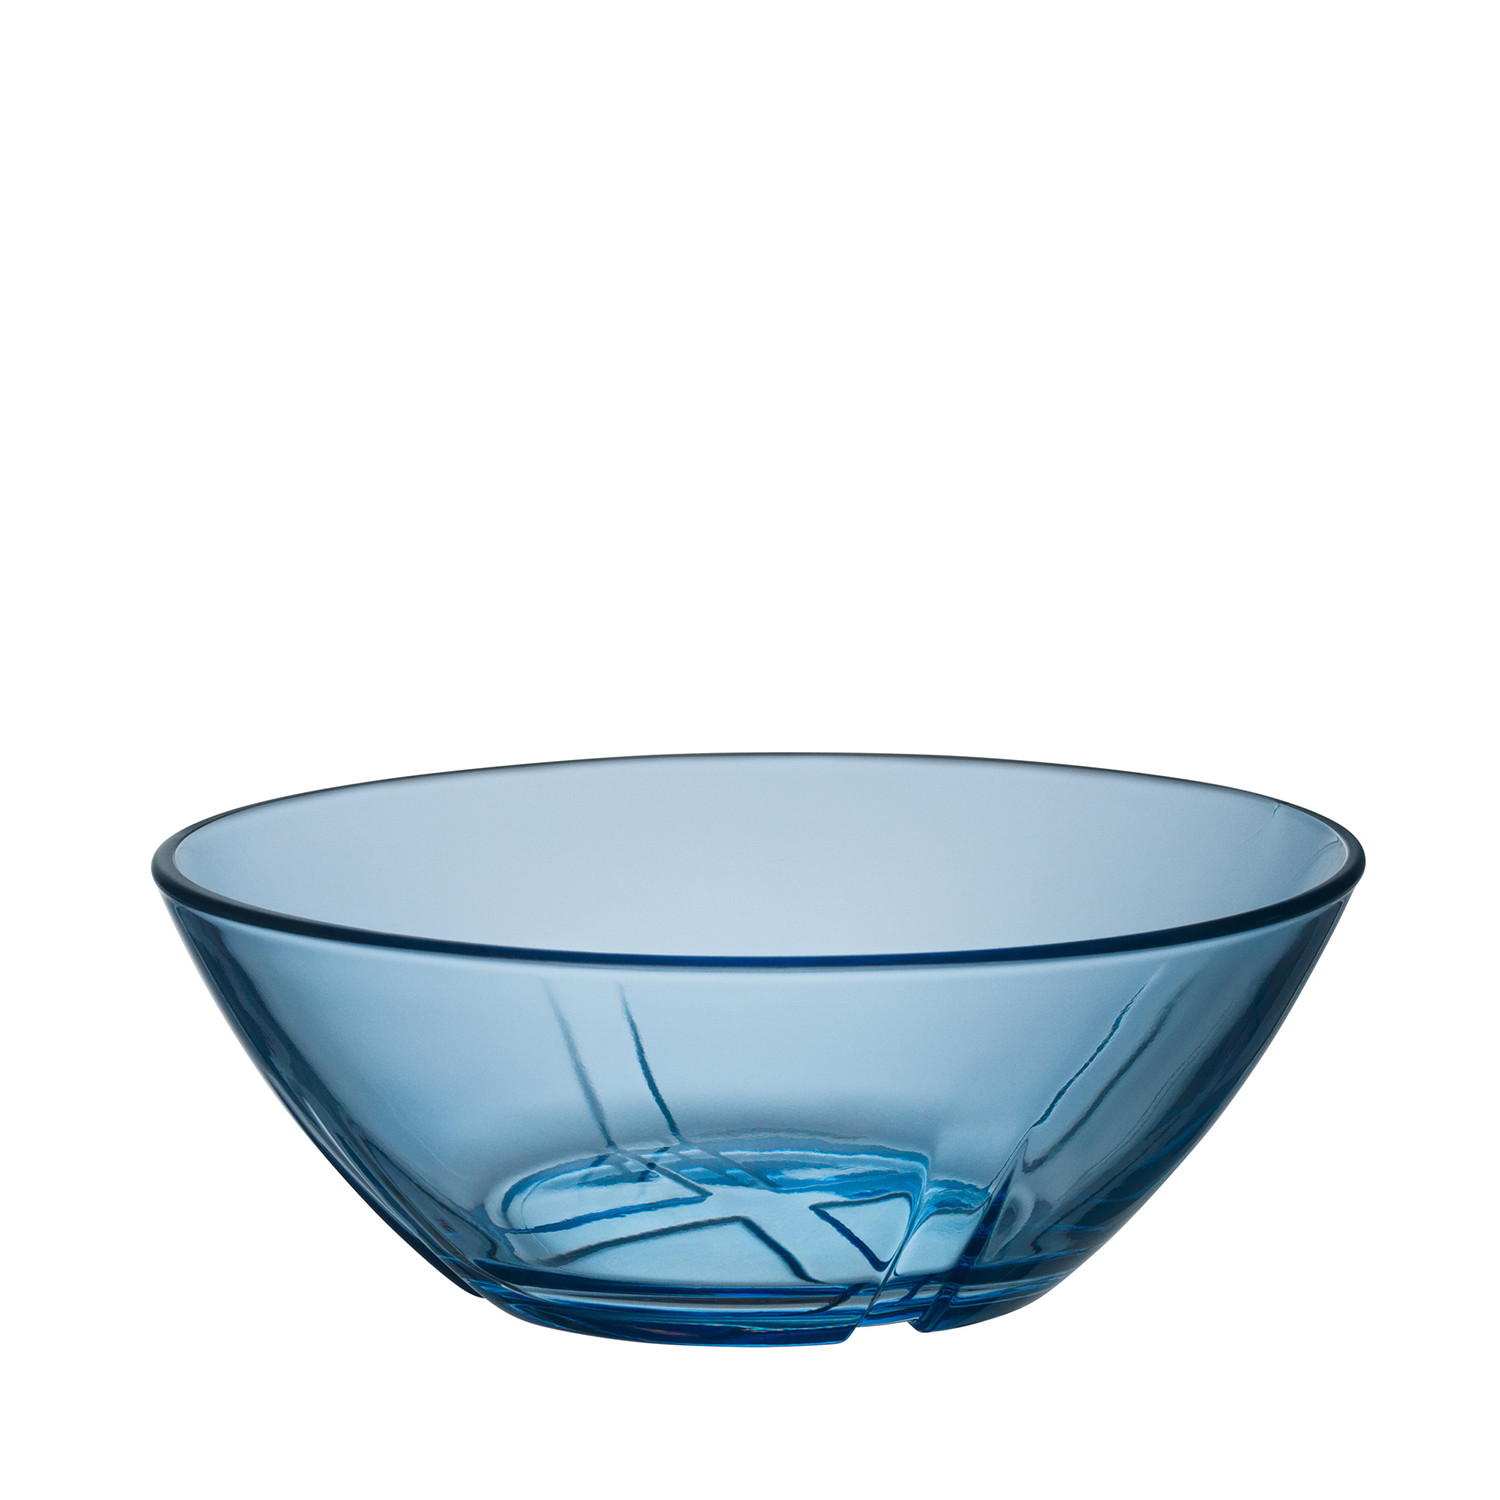 Bruk bowl small set of 4 clear kosta boda for What is touchofmodern